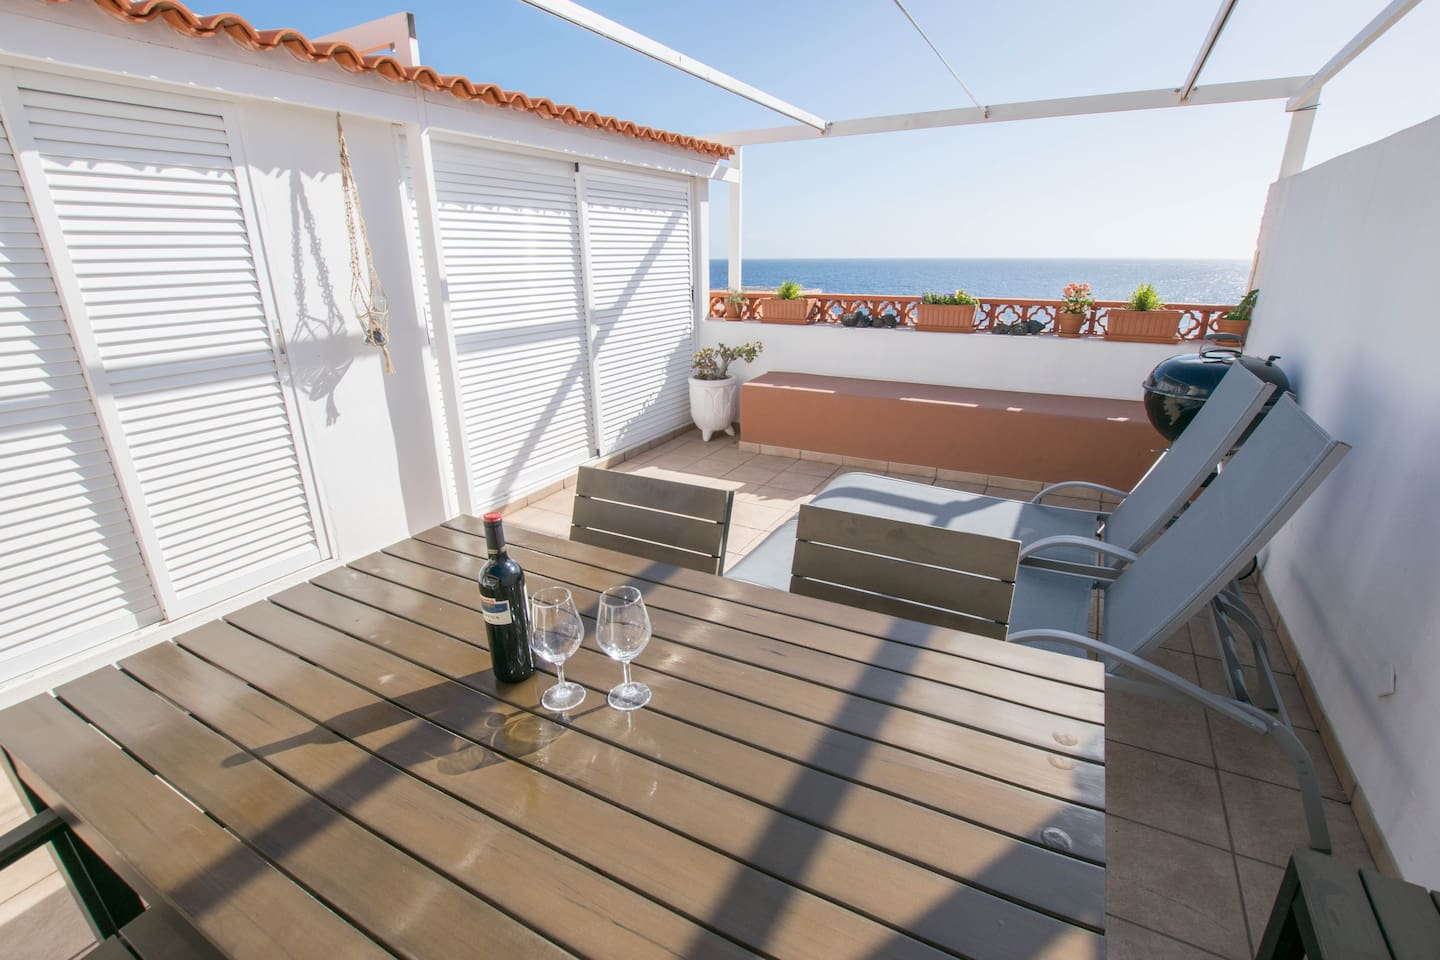 """The apartment is excellent, clean comfortable and stylish. Kitchen well equipped and lots of thoughtful extras. Loved the terrace with sea view , great sun loungers and fab laundry room""."